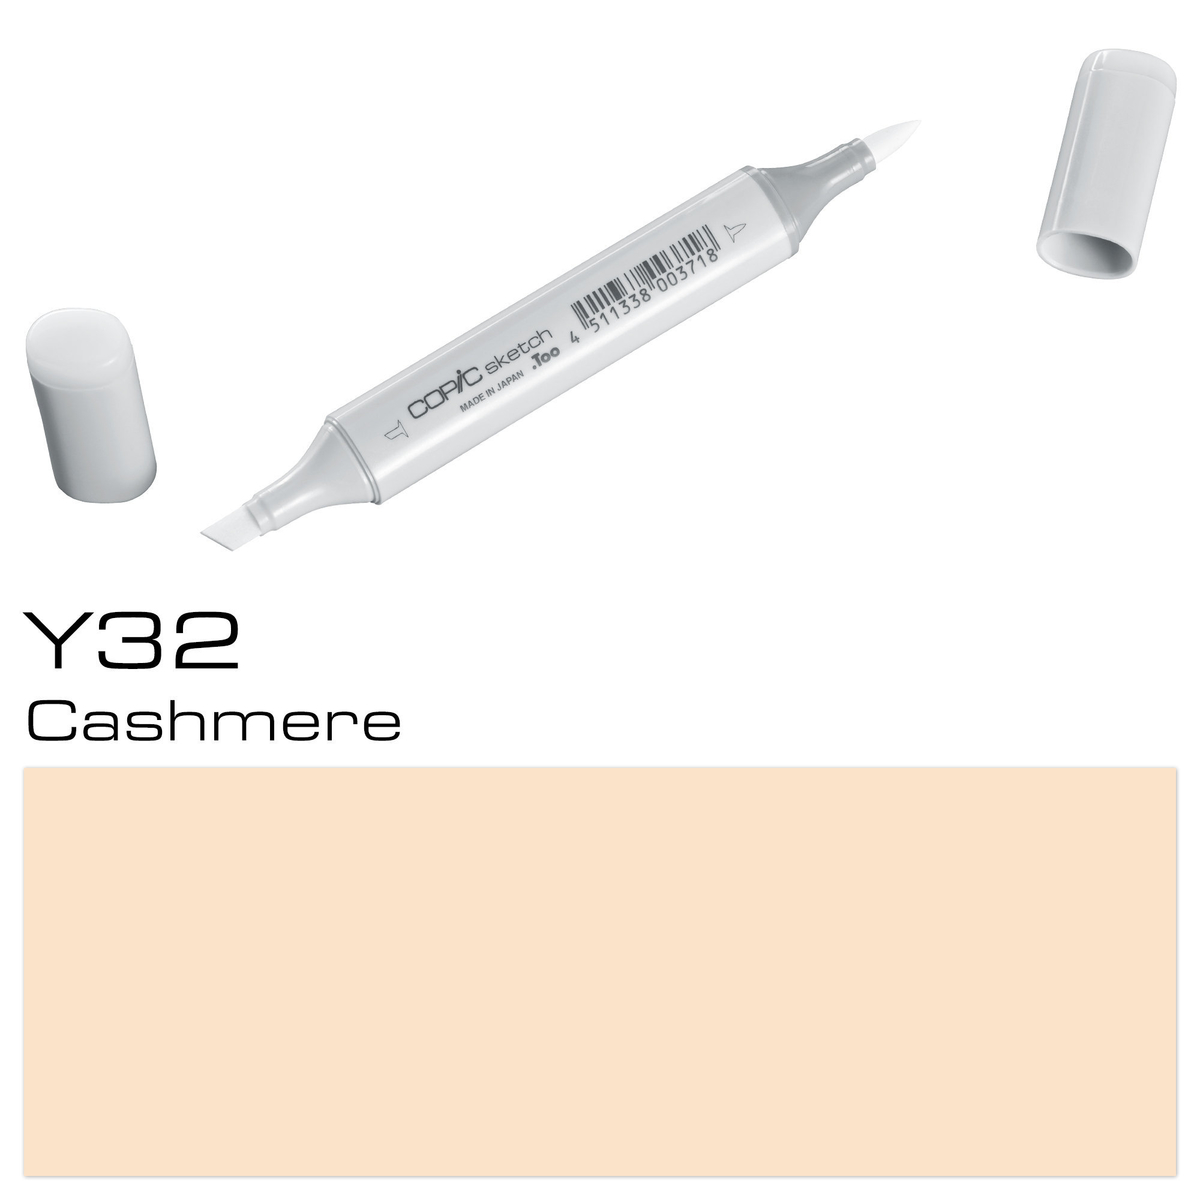 Copic Sketch Y 32 cashmere